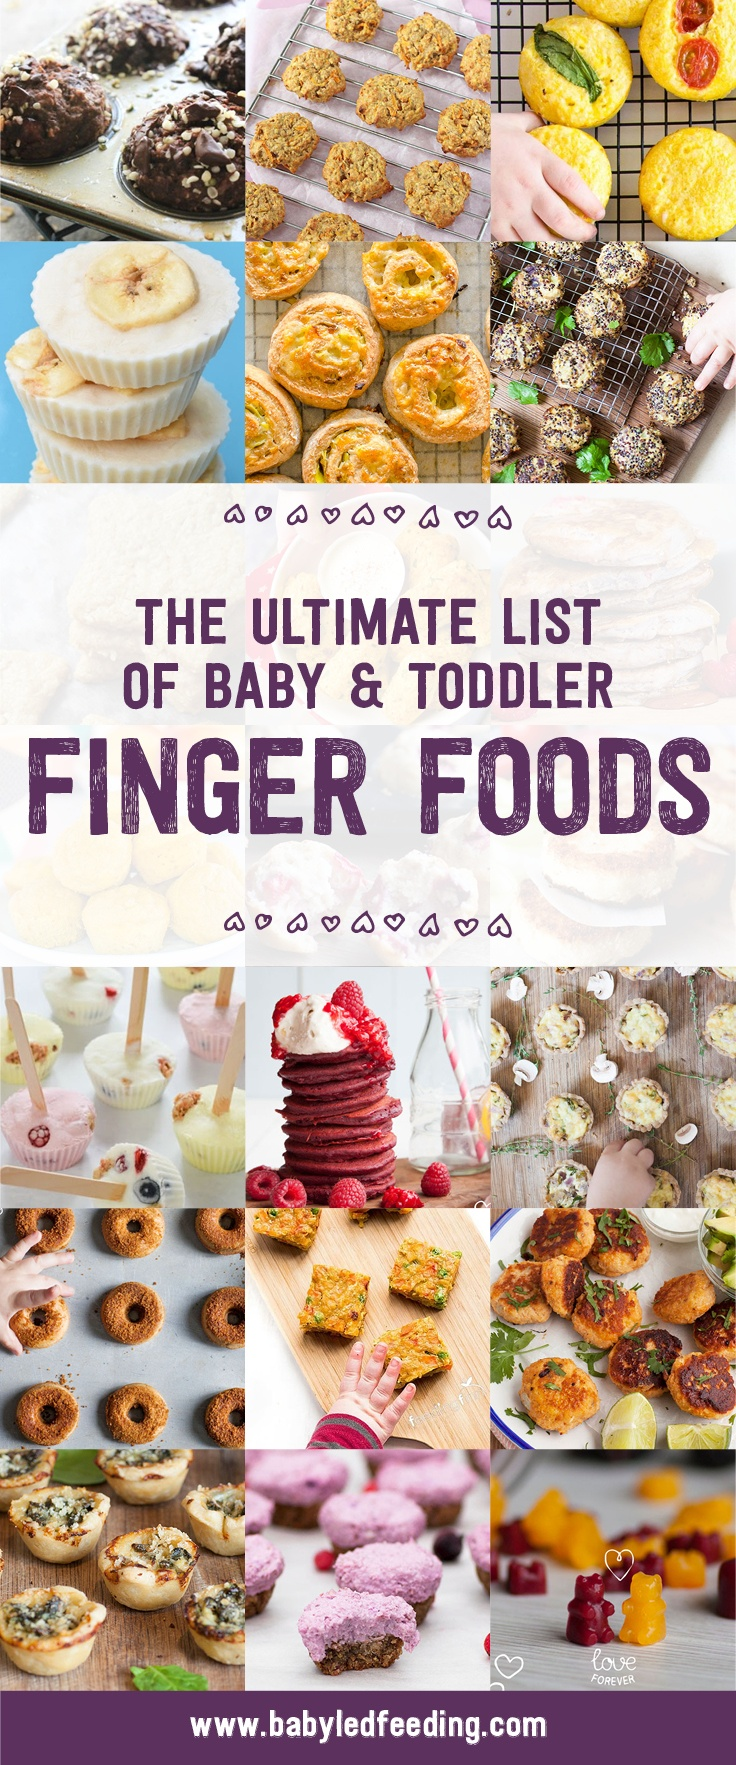 The Ultimate List of Baby and Toddler Finger Foods. Homemade recipe and ideas for baby led weaning. Most recipe are REFINED SUGAR FREE and LOW SALT. Easy recipe, healthy recipe, and family recipe even for the PICKY EATER! Simple ideas for breakfast, lunch, dinner, and snacks. This list includes hidden veggies, juicy fruit, sweet and savory! You'll even fins some VEGAN and DAIRY FREE options! #fingerfood #fingerfoods #babyledweaning #babyledfeeding #babyfood #refinedsugarfree